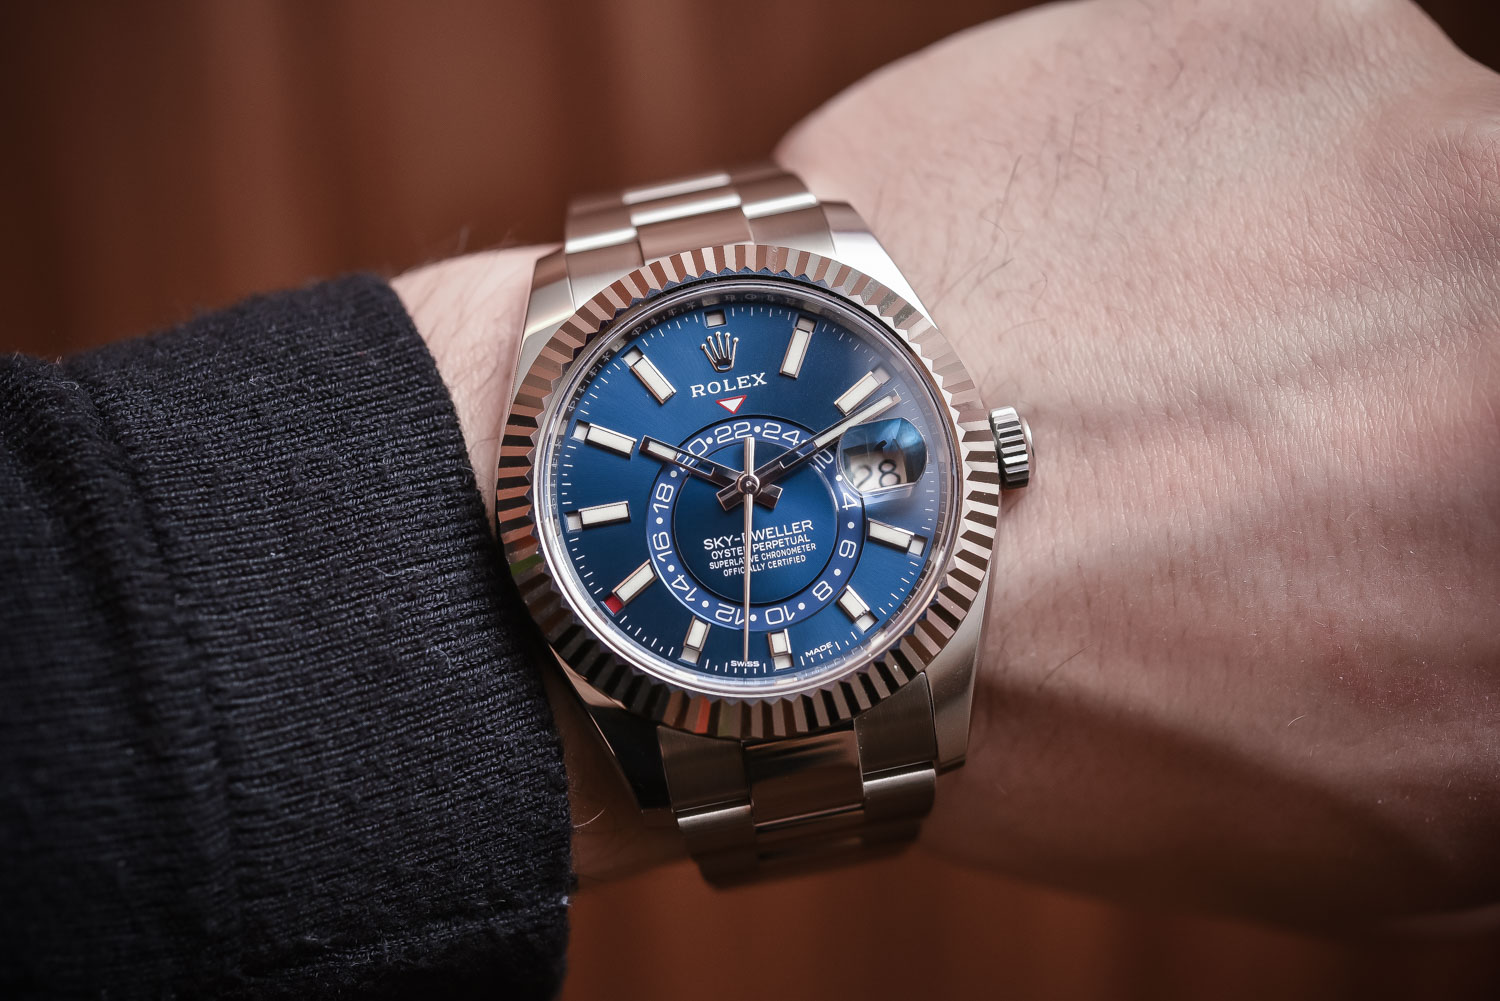 Rolex Sky-dweller steel - Top 10 Baselworld 2017